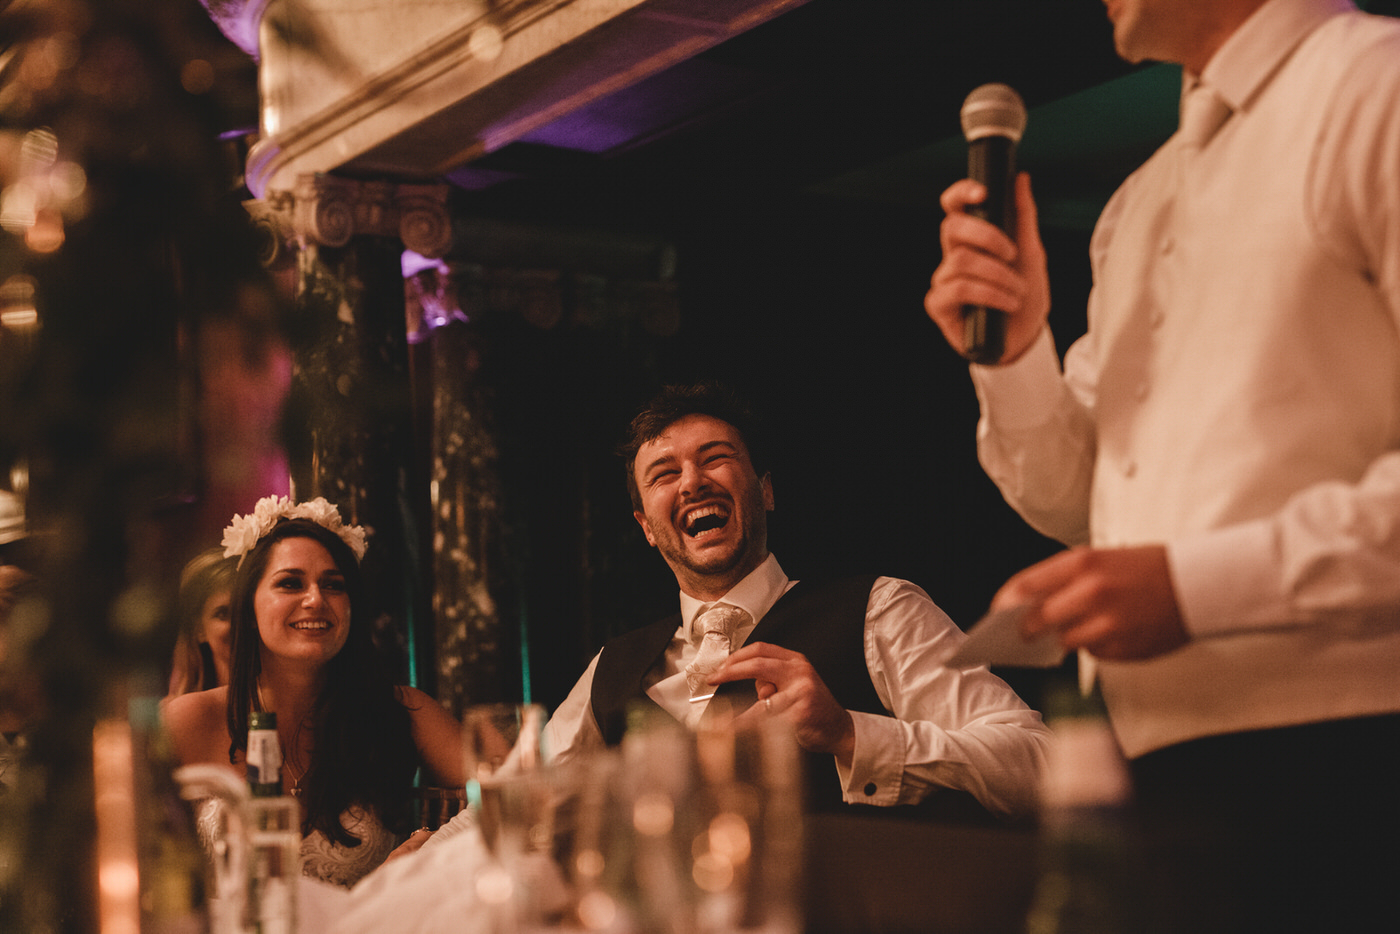 the groom laughs loudly as the guests listen to the best man's speech